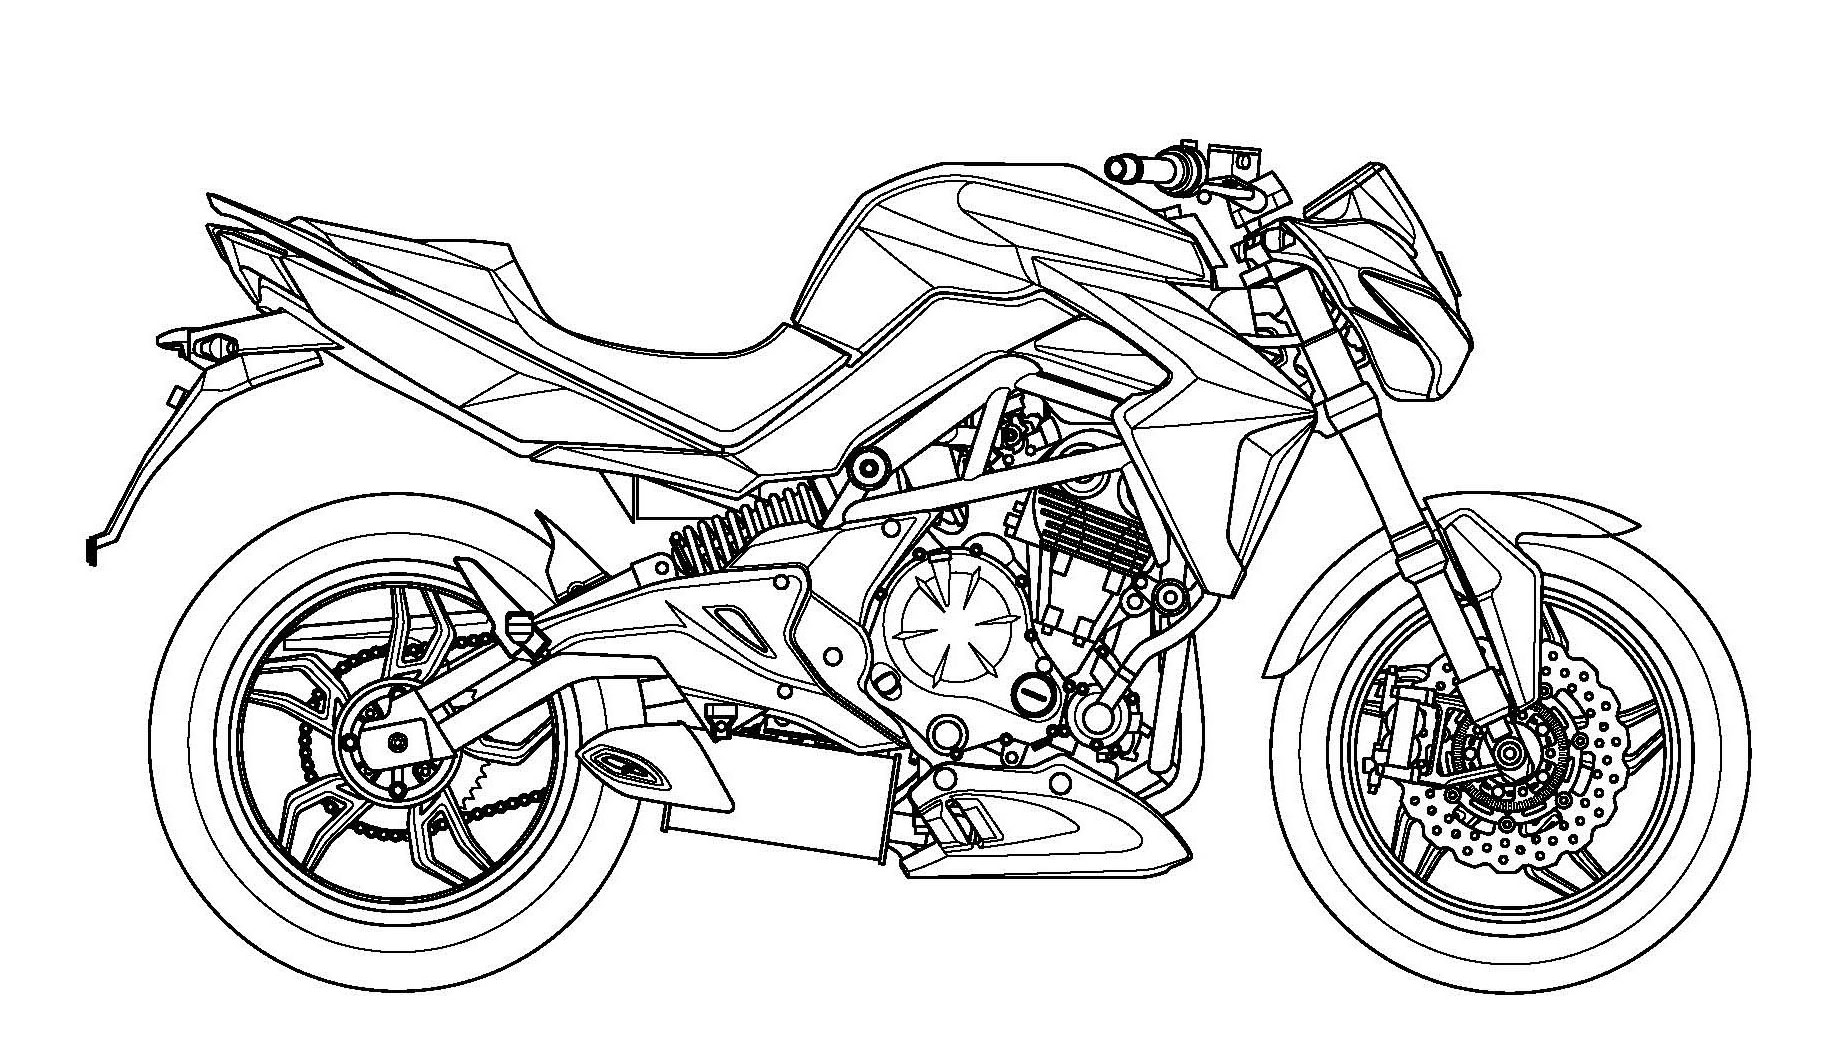 Kymco Patents Its Version Of Kawasaki Er 6n